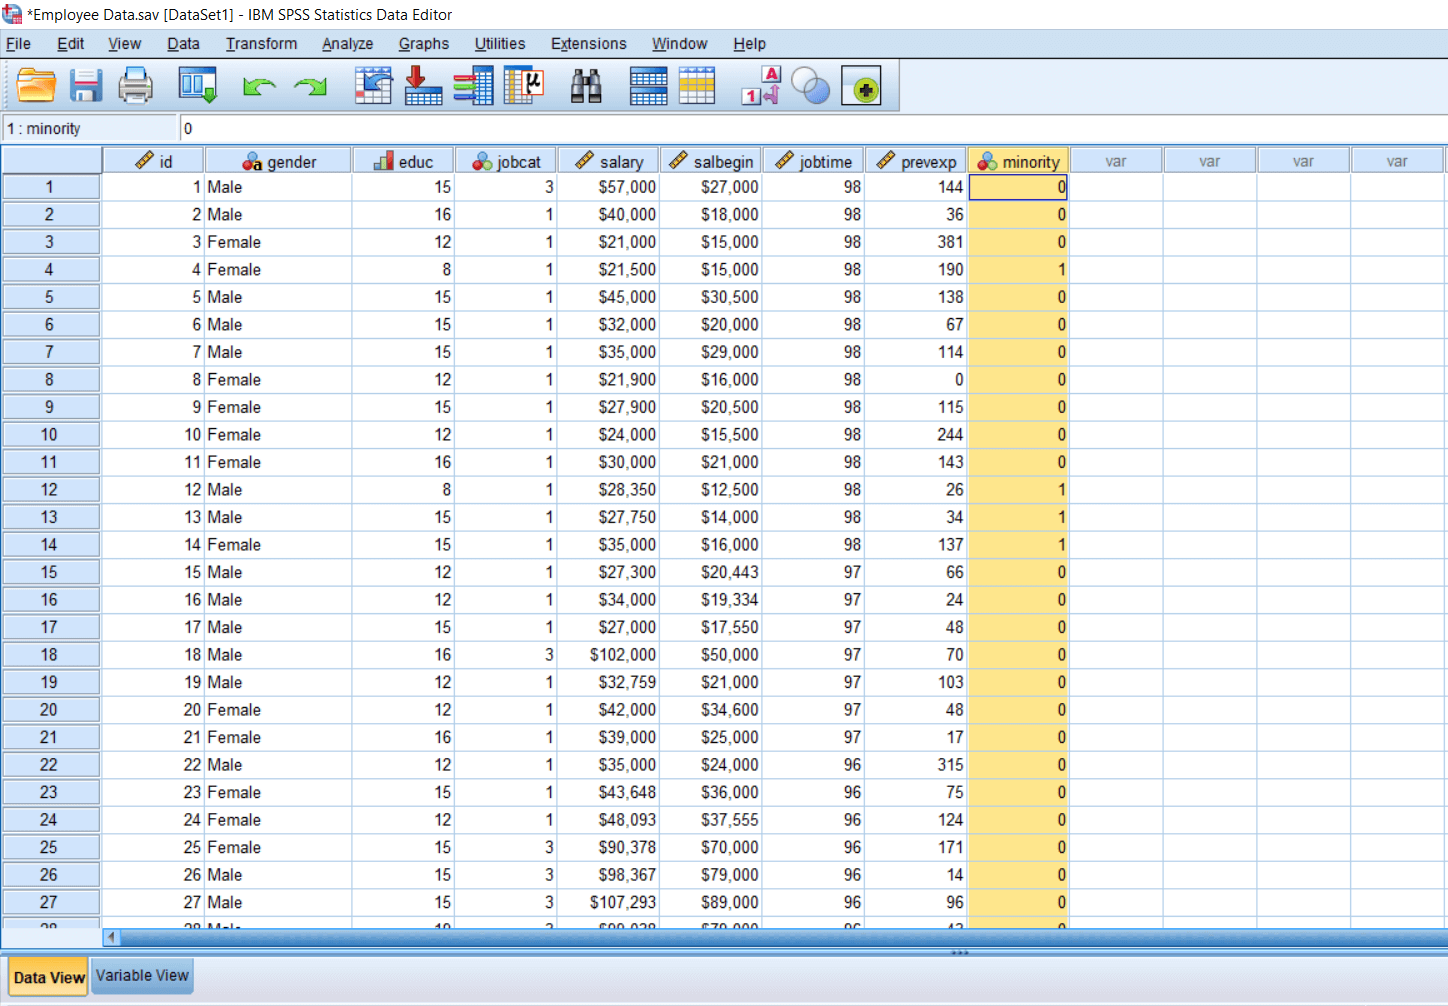 Multiple Regressions of SPSS